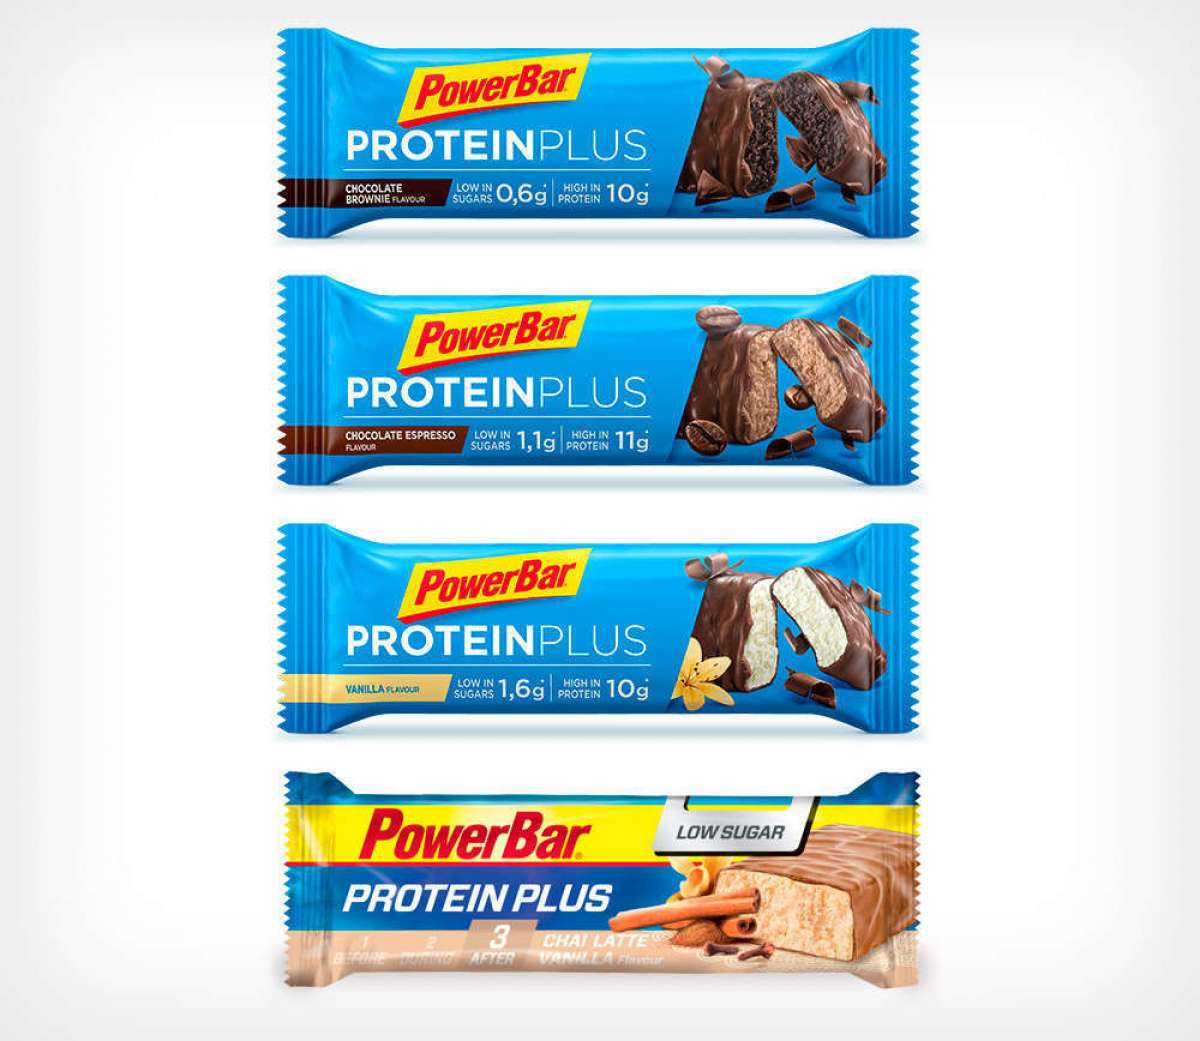 Proteínas a gogó con las barritas PowerBar Protein Plus Low Sugar, Clean Whey y Protein Nut2